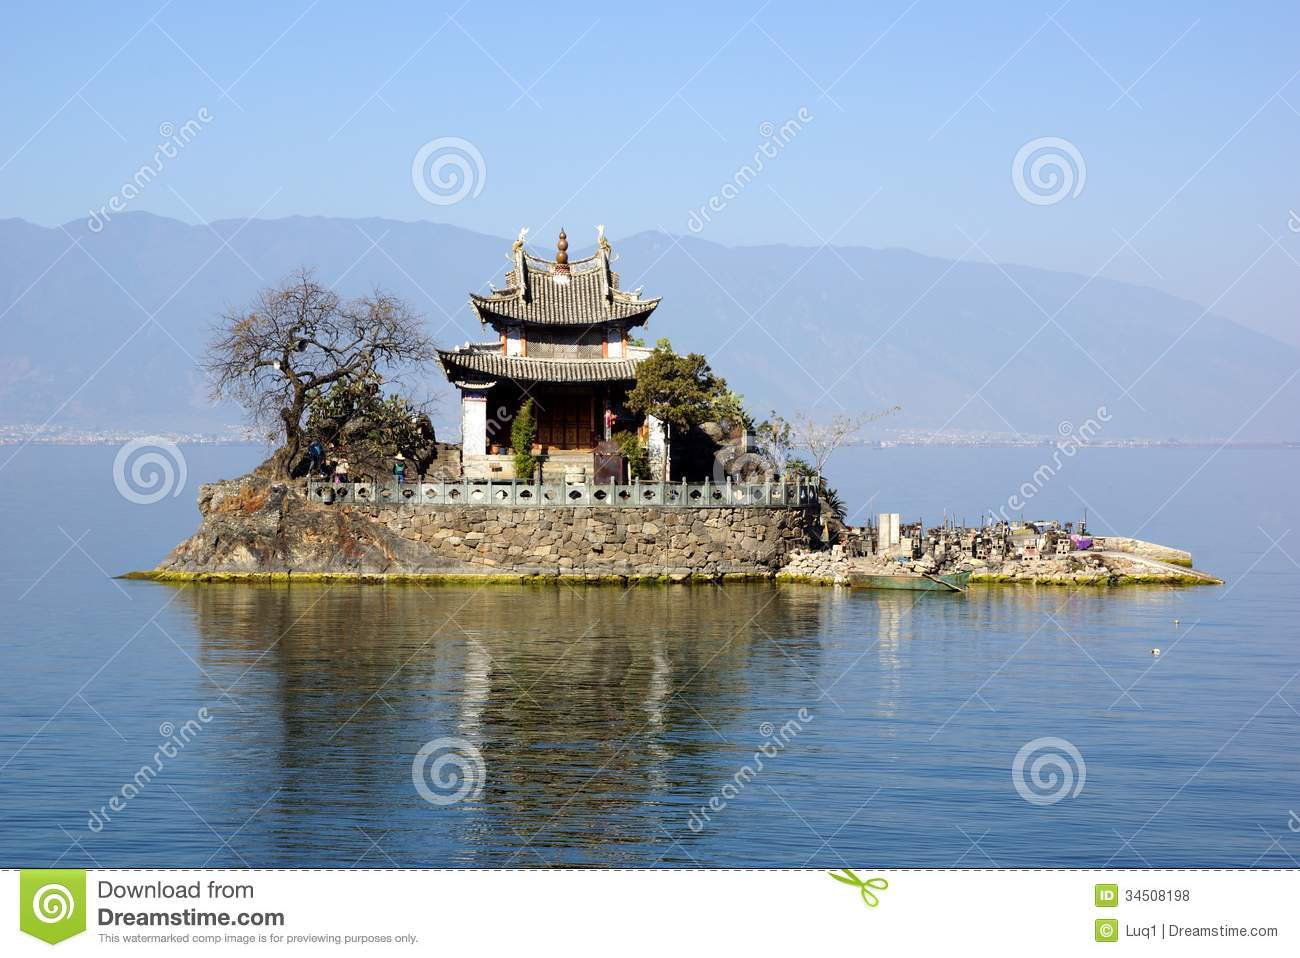 Erhai Lake, Dali, Yunnan Province, China Royalty Free Stock Photos.